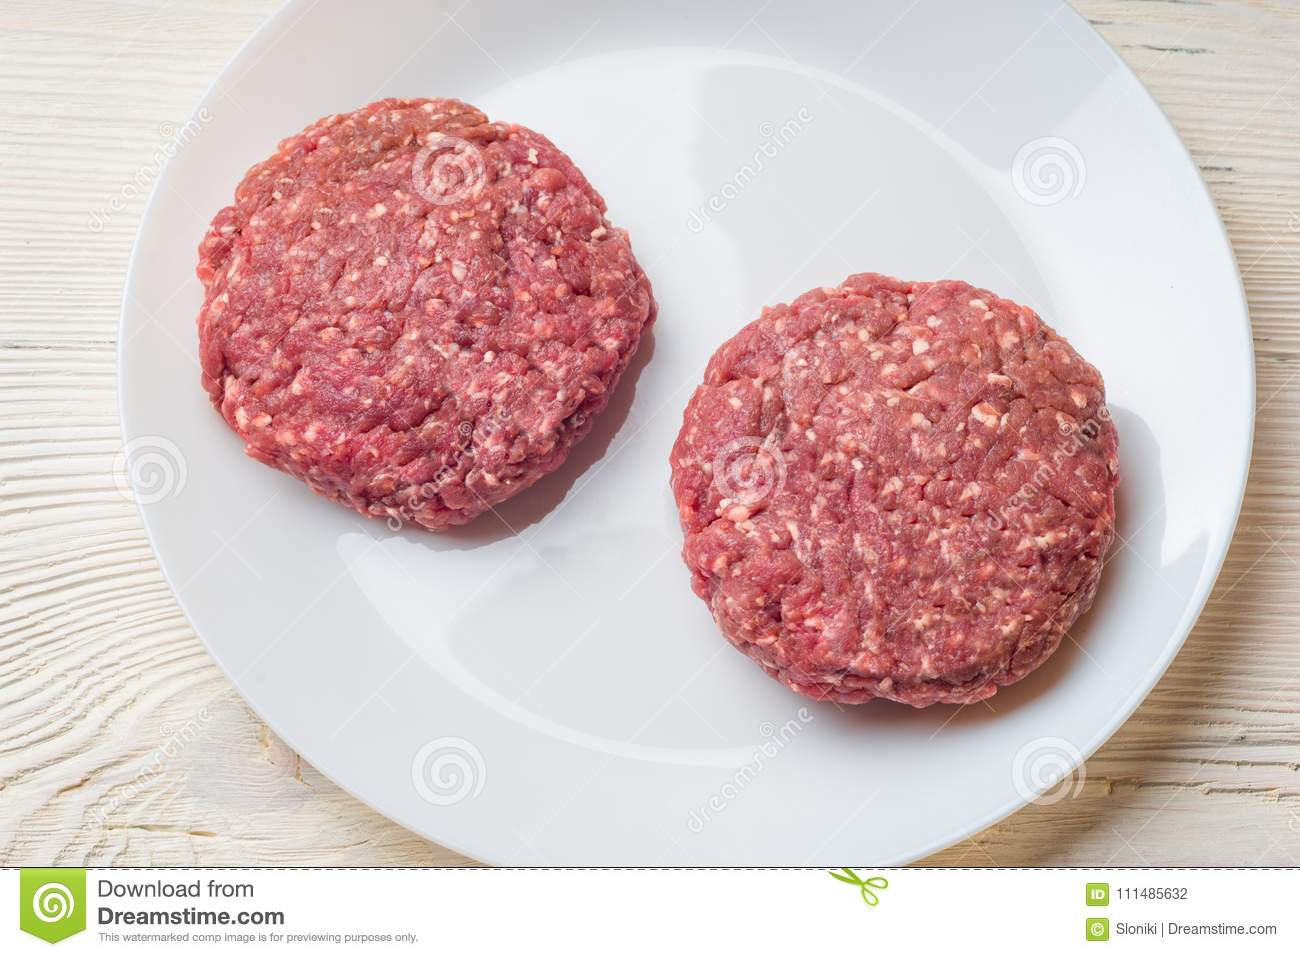 Raw Hamburger Patties On White Plate Stock Photo Image Of Nutrition Patty 111485632,Tommy Pickles Maternal Grandparents